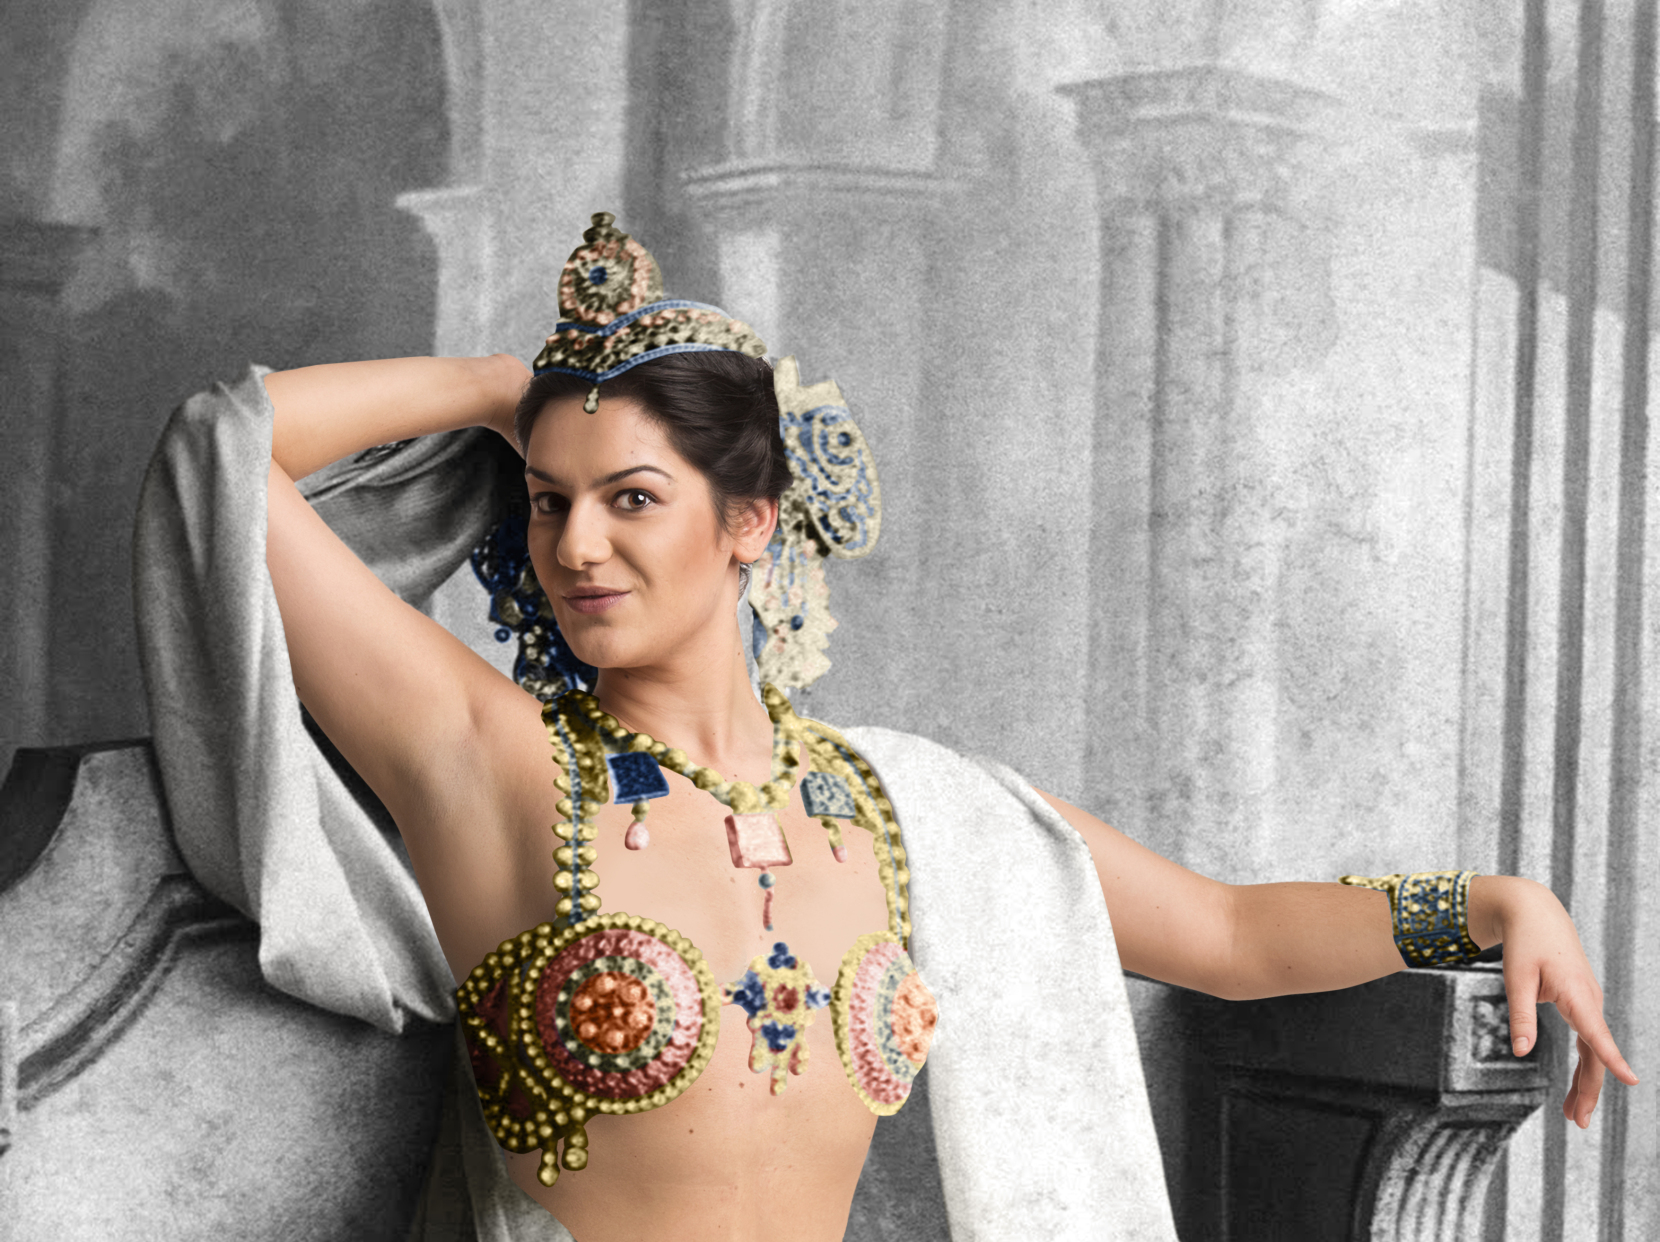 mata-hari_final-no-text-website-crop.jpg